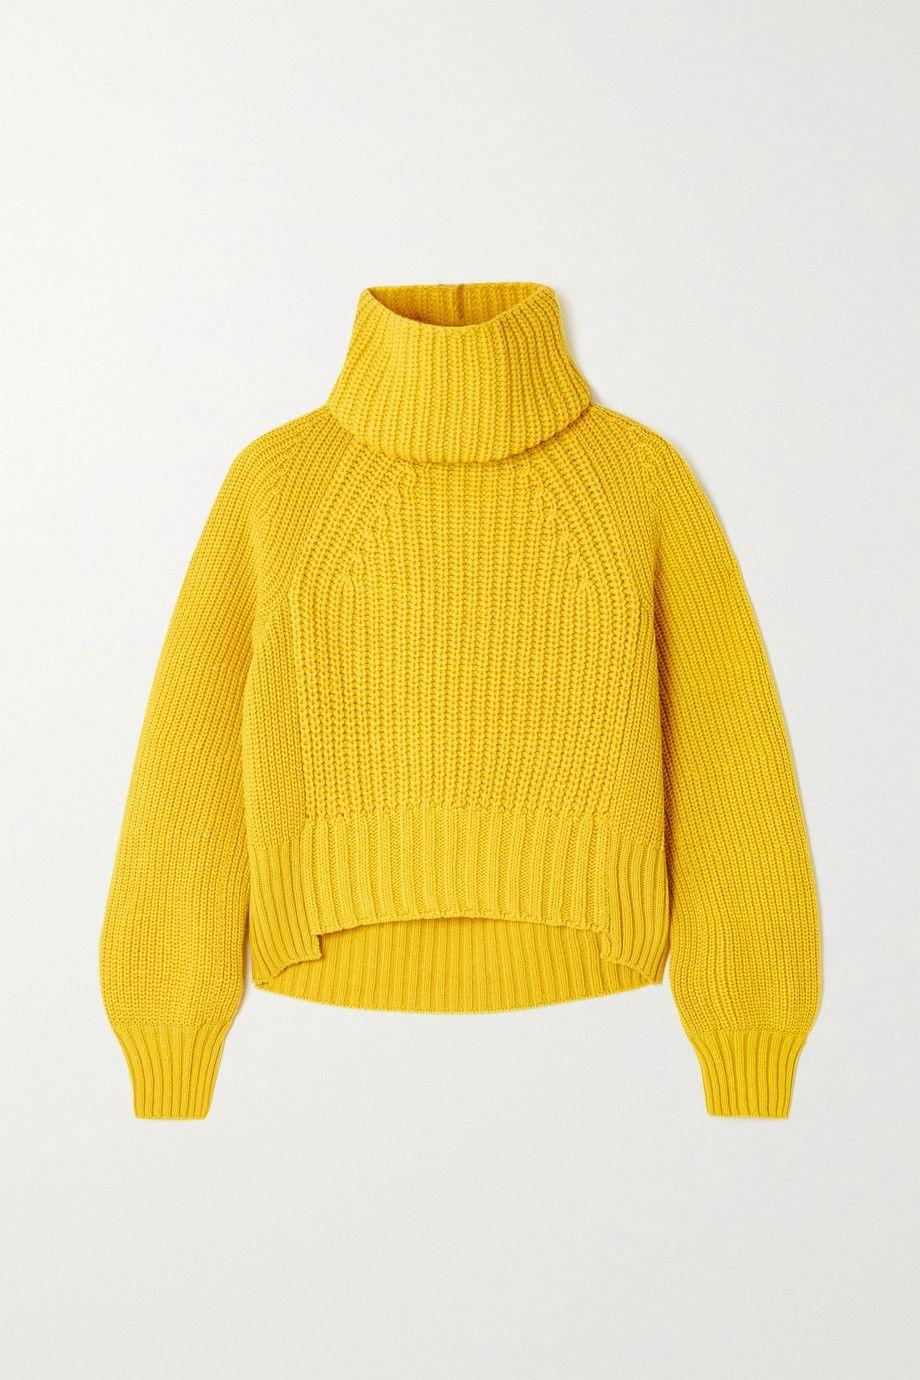 """<p>Giallo cedro, il maglione a collo alto, lavorato a coste, di <strong>Sacai</strong>.</p><p><a class=""""link rapid-noclick-resp"""" href=""""https://www.net-a-porter.com/en-it/shop/product/sacai/clothing/heavy-knit/ribbed-wool-blend-sweater/11452292645300662"""" rel=""""nofollow noopener"""" target=""""_blank"""" data-ylk=""""slk:710 euro su Net-a-porter.com"""">710 euro su Net-a-porter.com</a></p>"""